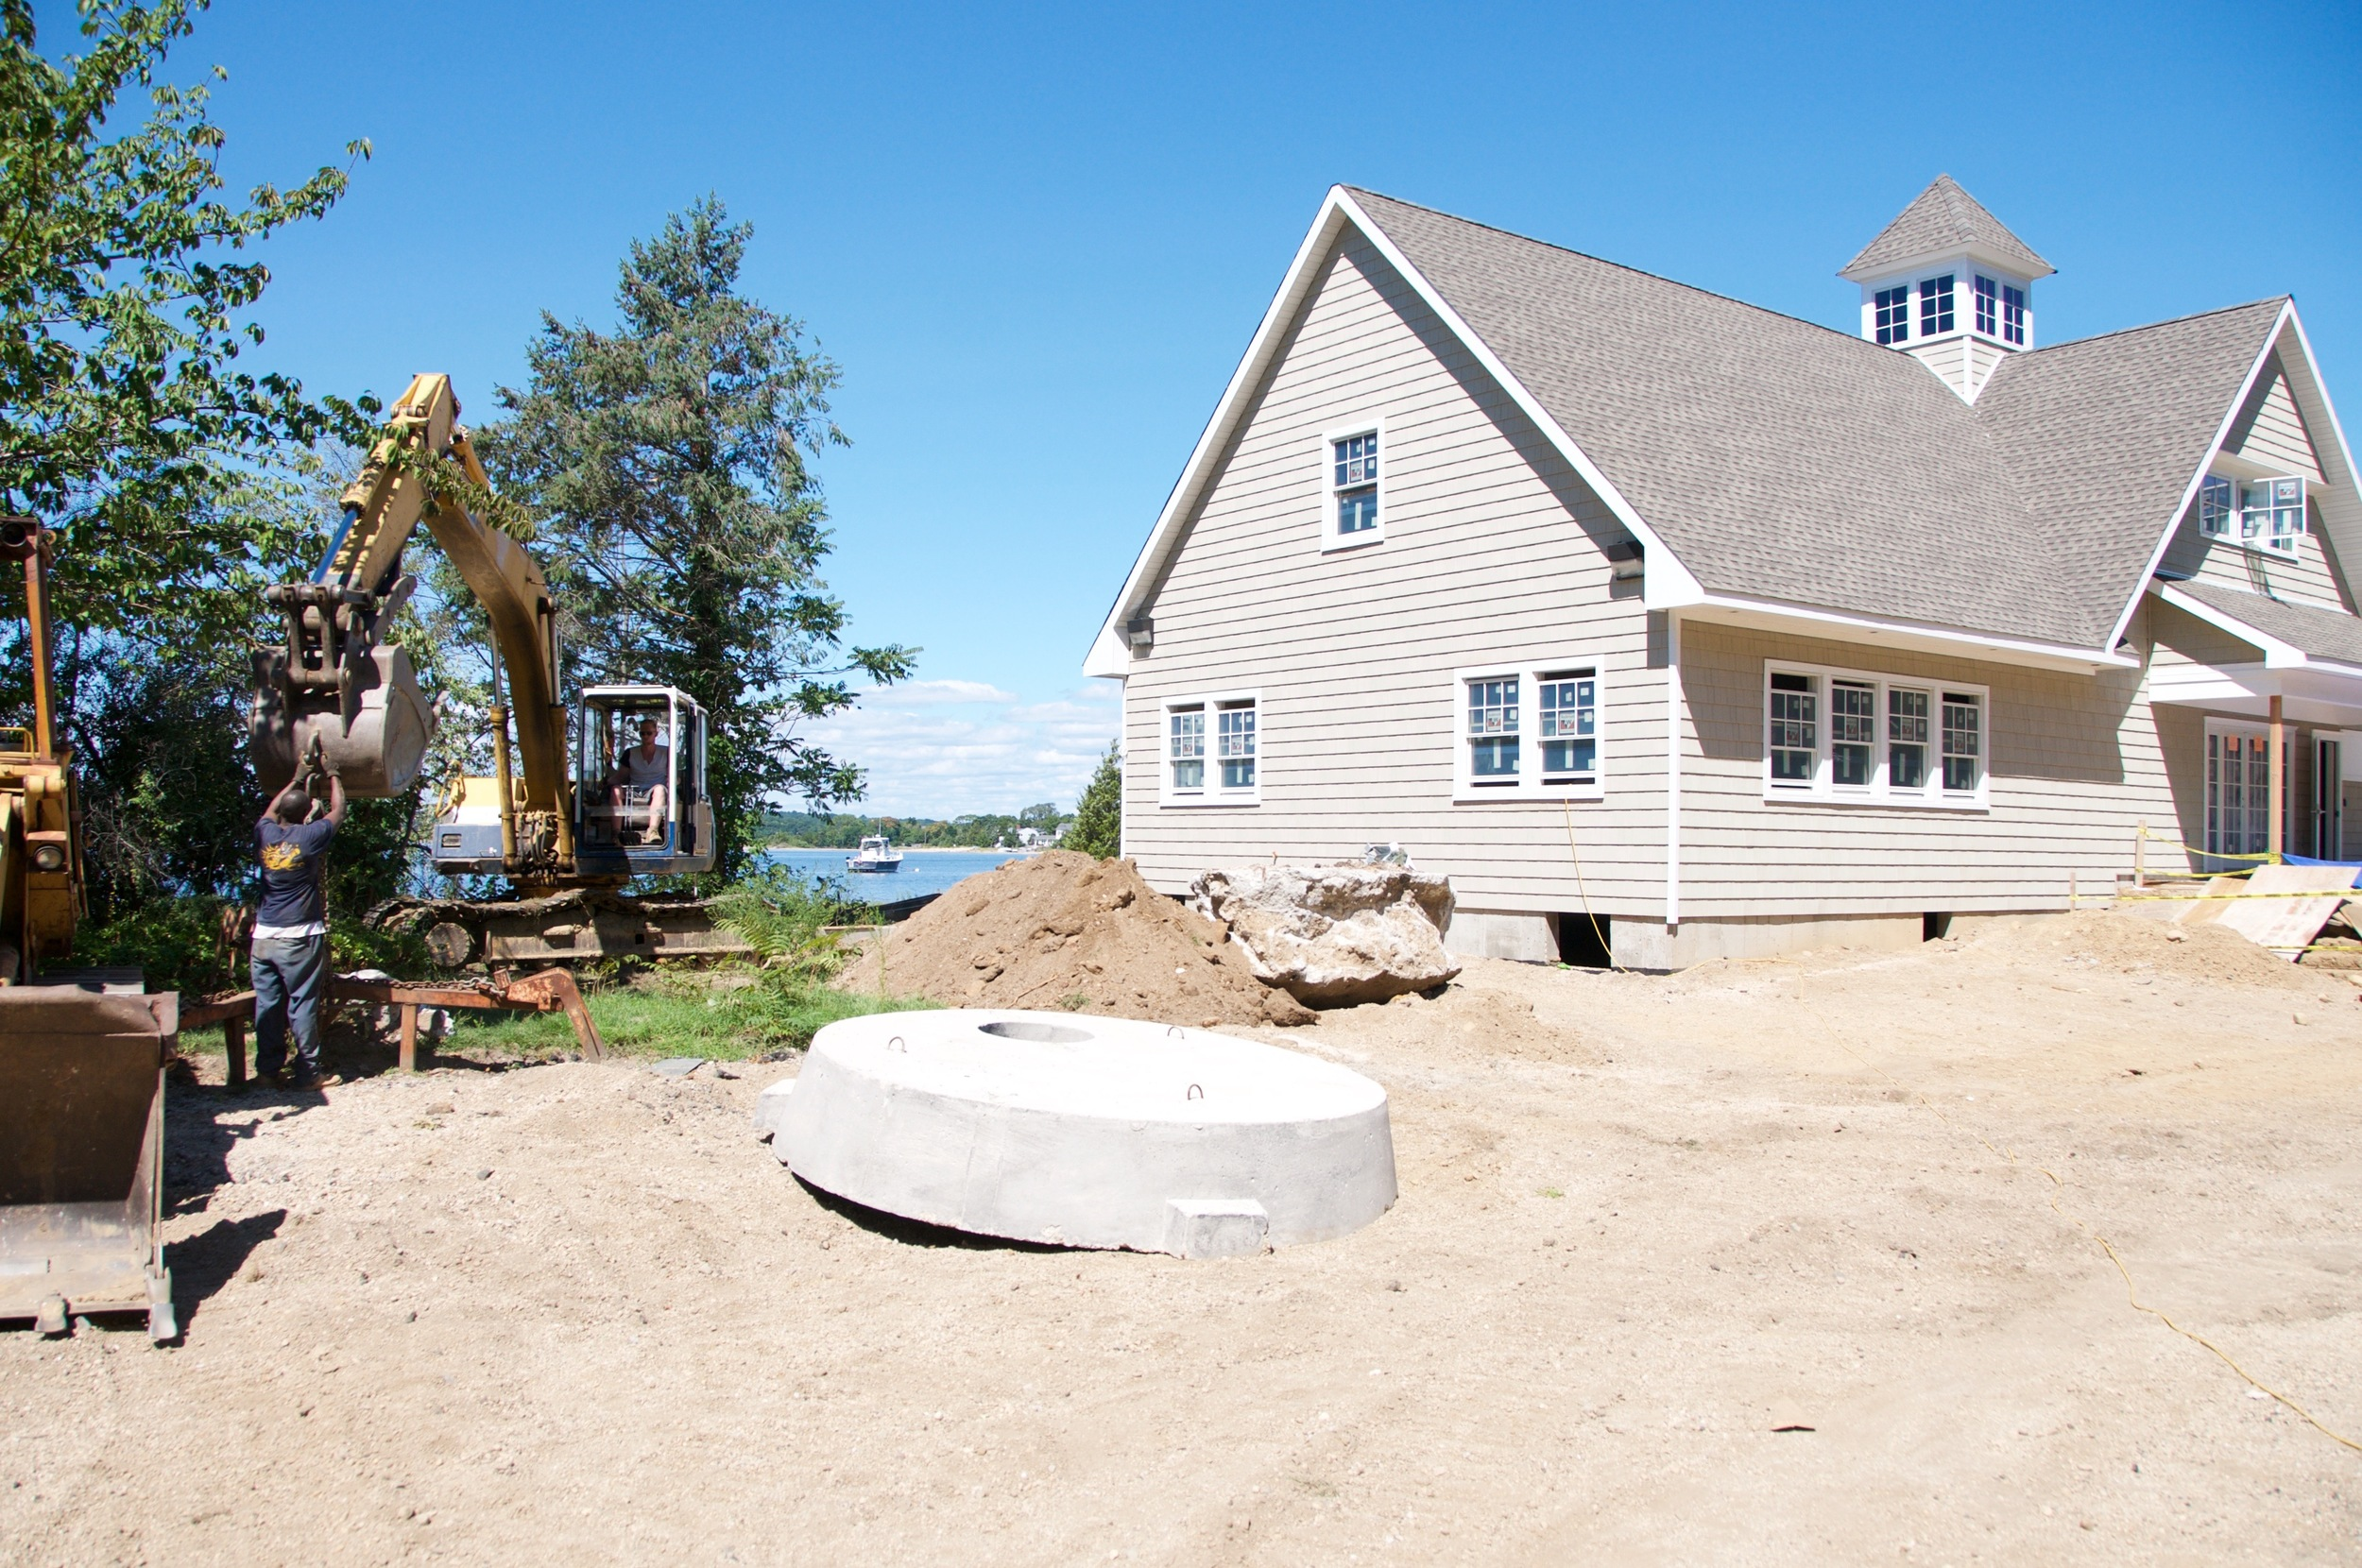 Asharoken's new Village Hall is still under development, with its opening delayed until mid-October due to an unexpected drainage pipe issue.